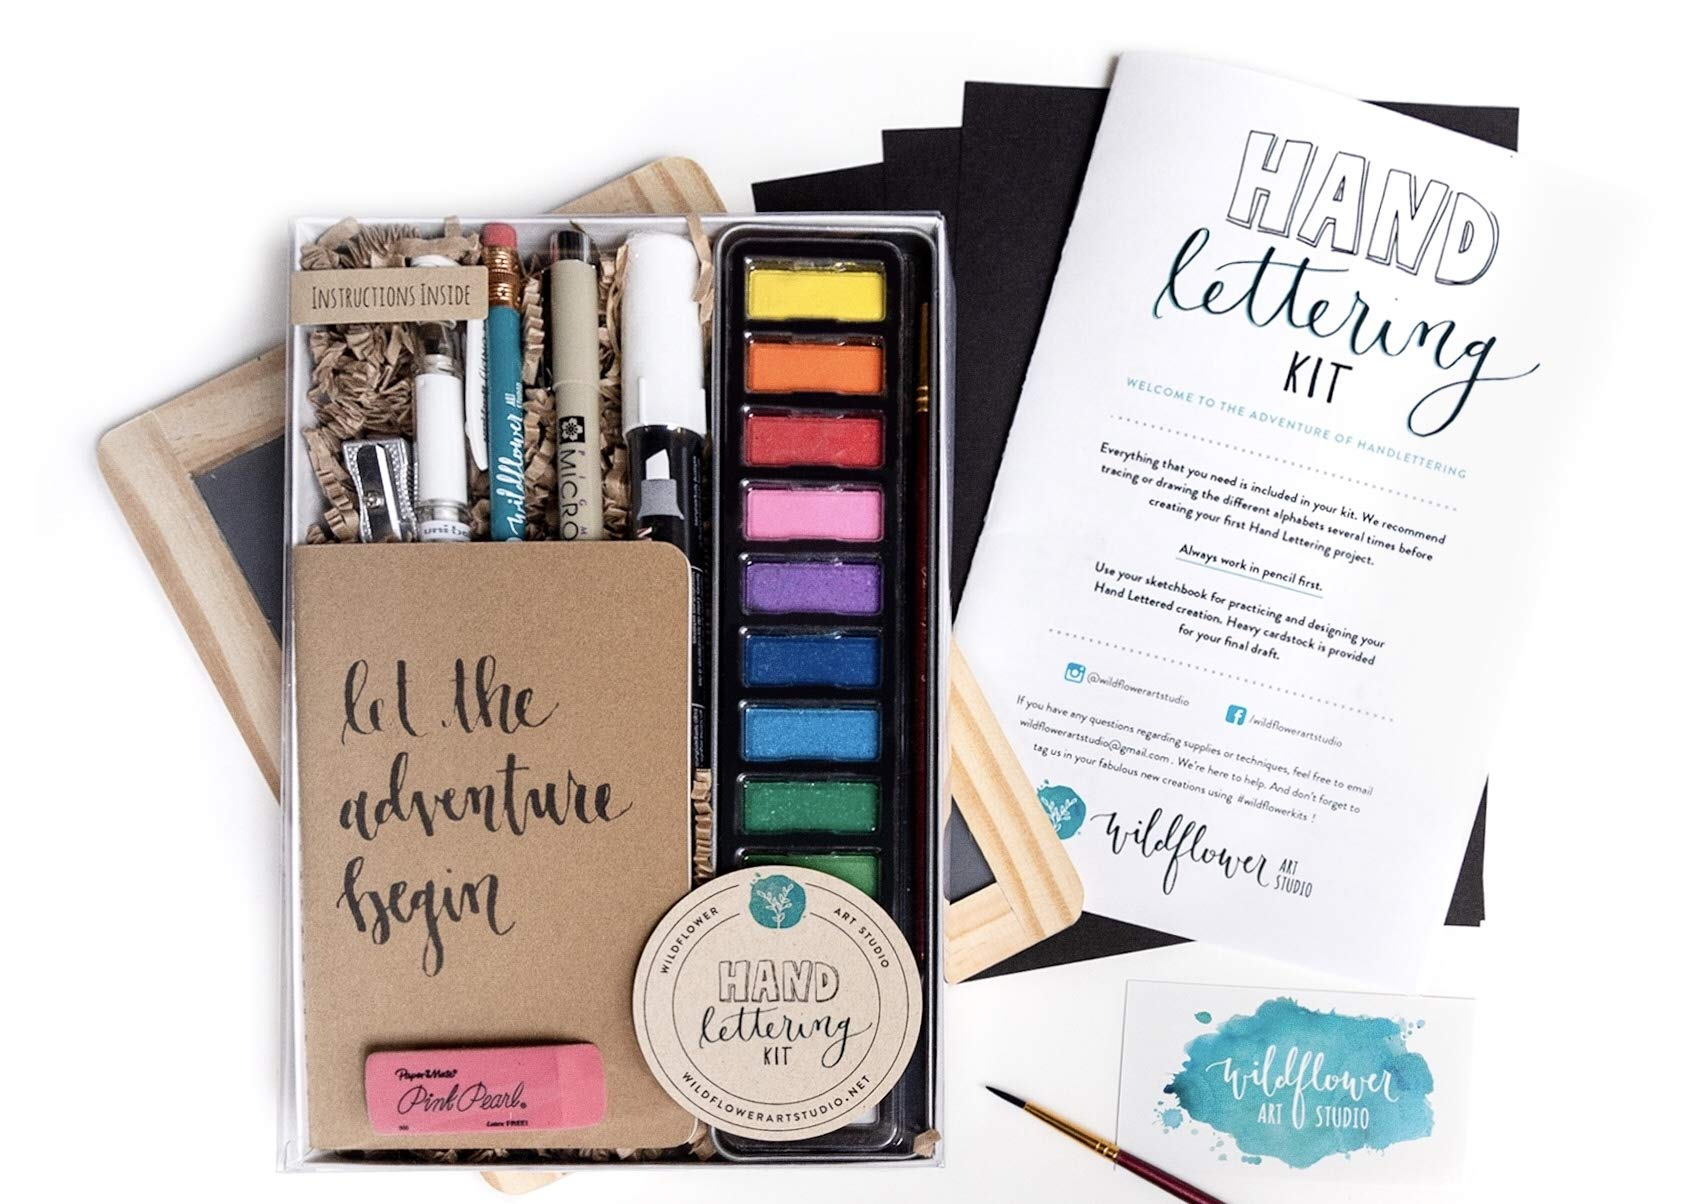 Hand Lettering Kit - Beginning Hand Lettering Set with Instructional Booklet and 4 Practice Alphabets - DIY Hand Lettering for Beginners by Wildflower Art Studio